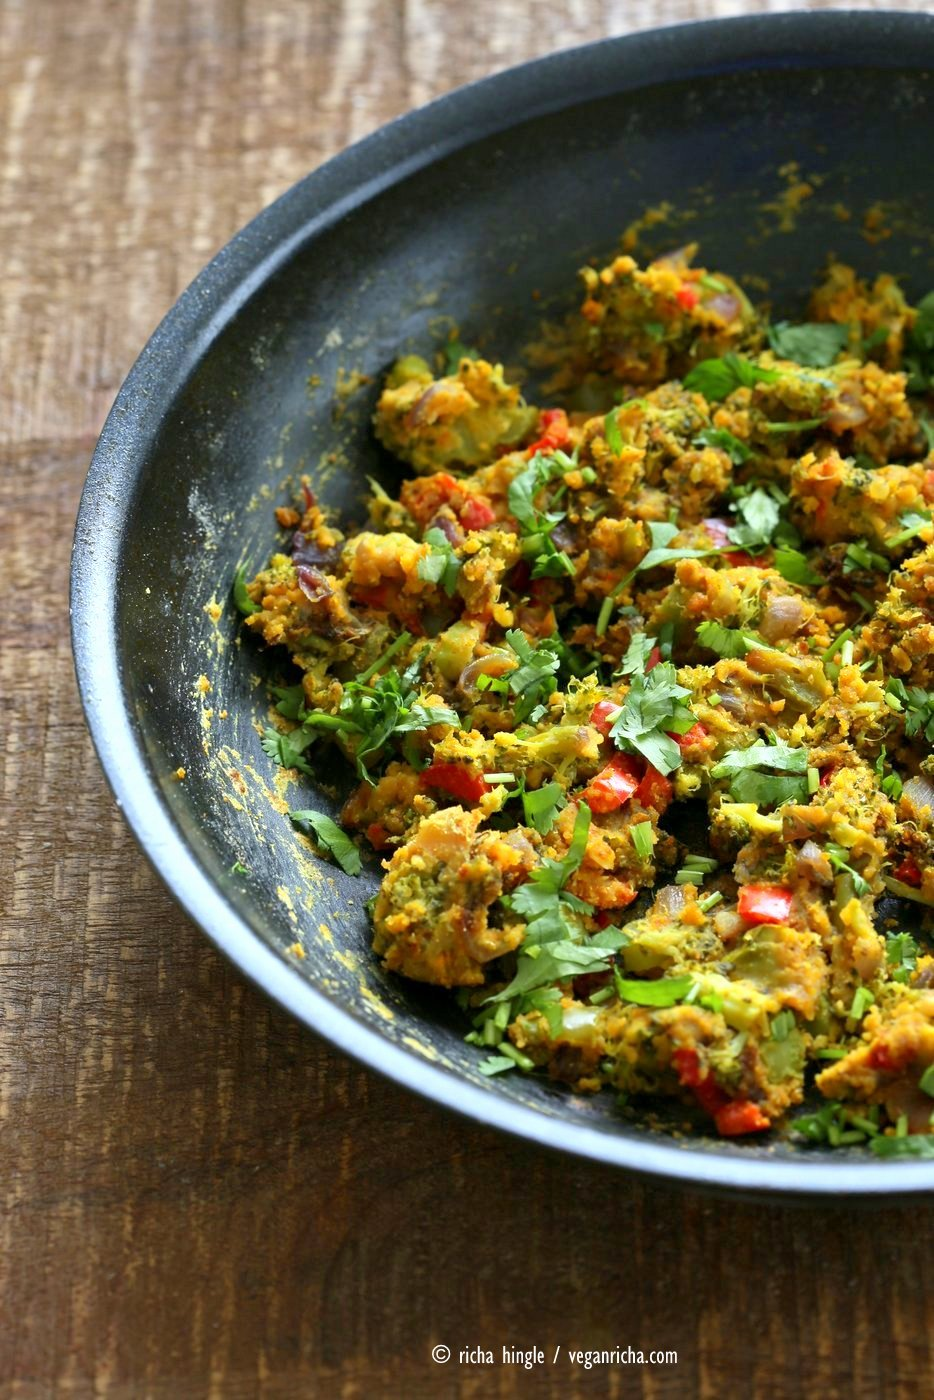 Broccoli Zunka Recipe - Broccoli & Bell Pepper with Spices, Chickpea flour. Broccoli Subzi Indian Veggie Side Recipe. Use spices of choice. Vegan Gluten-free Soy-free Recipe | VeganRicha.com